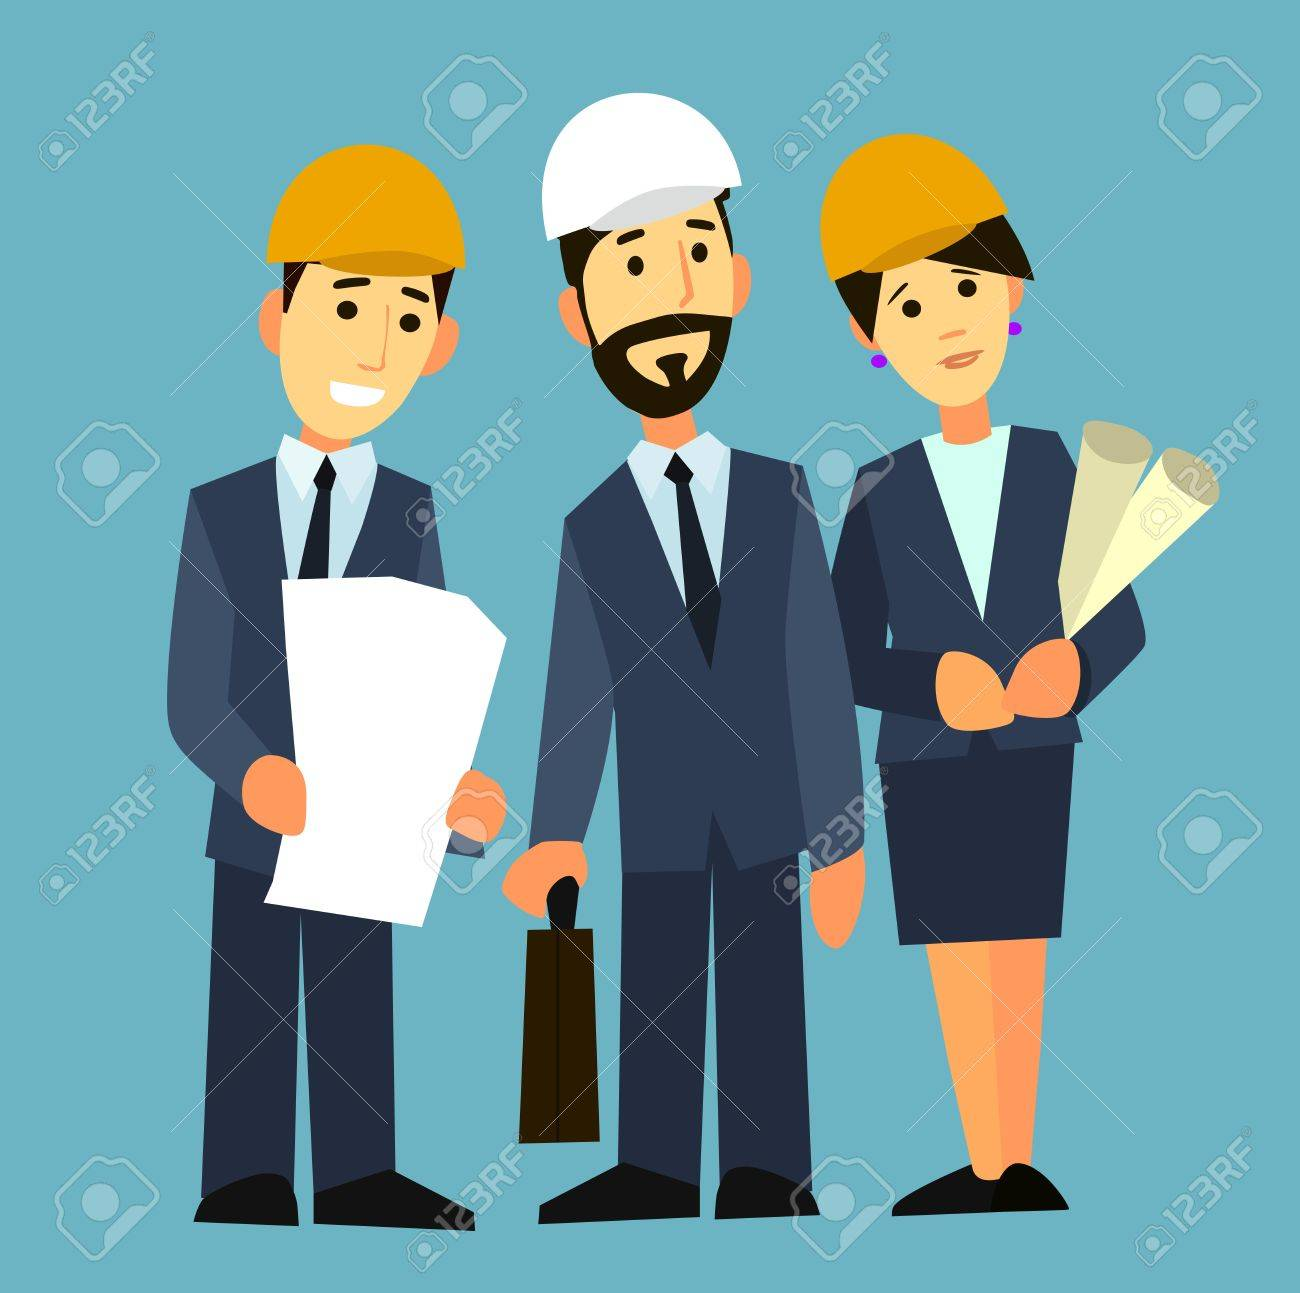 Business people group on meeting and presentation with construction business people group on meeting and presentation with construction engineer architect looking building model and malvernweather Images